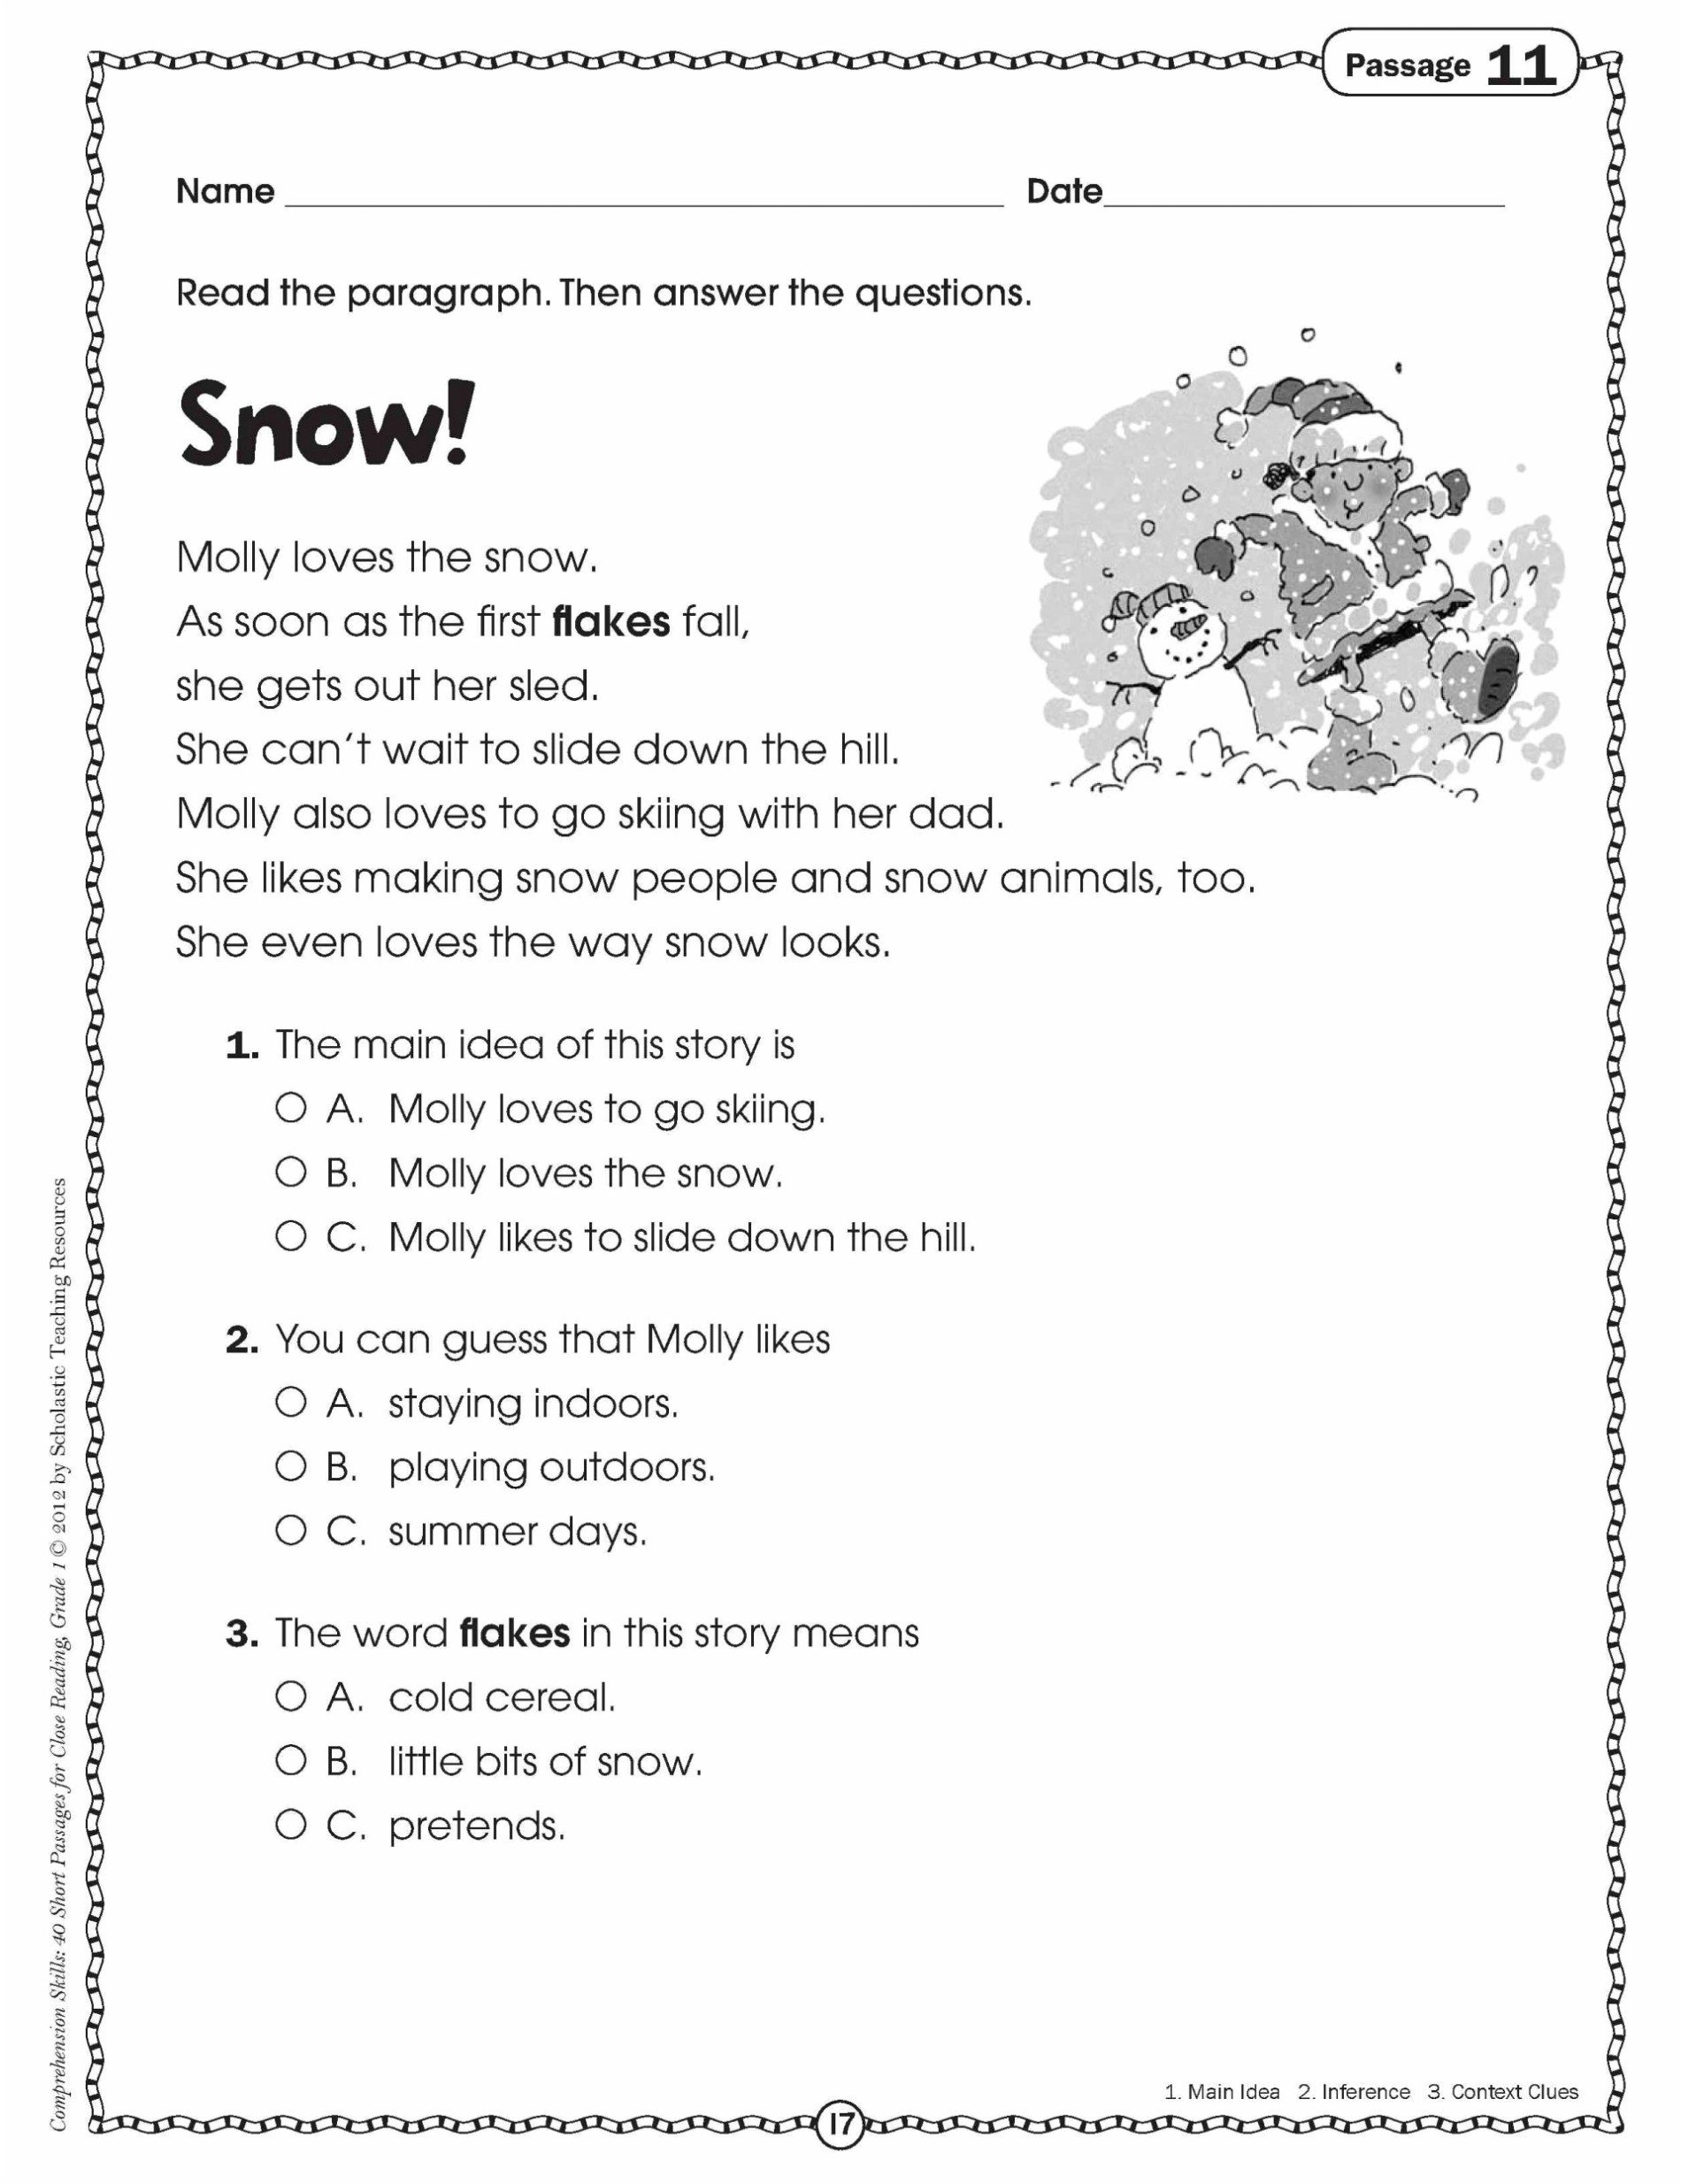 Sequence Worksheets 3rd Grade Math Worksheet 3rd Grade Reading Passages and Questions